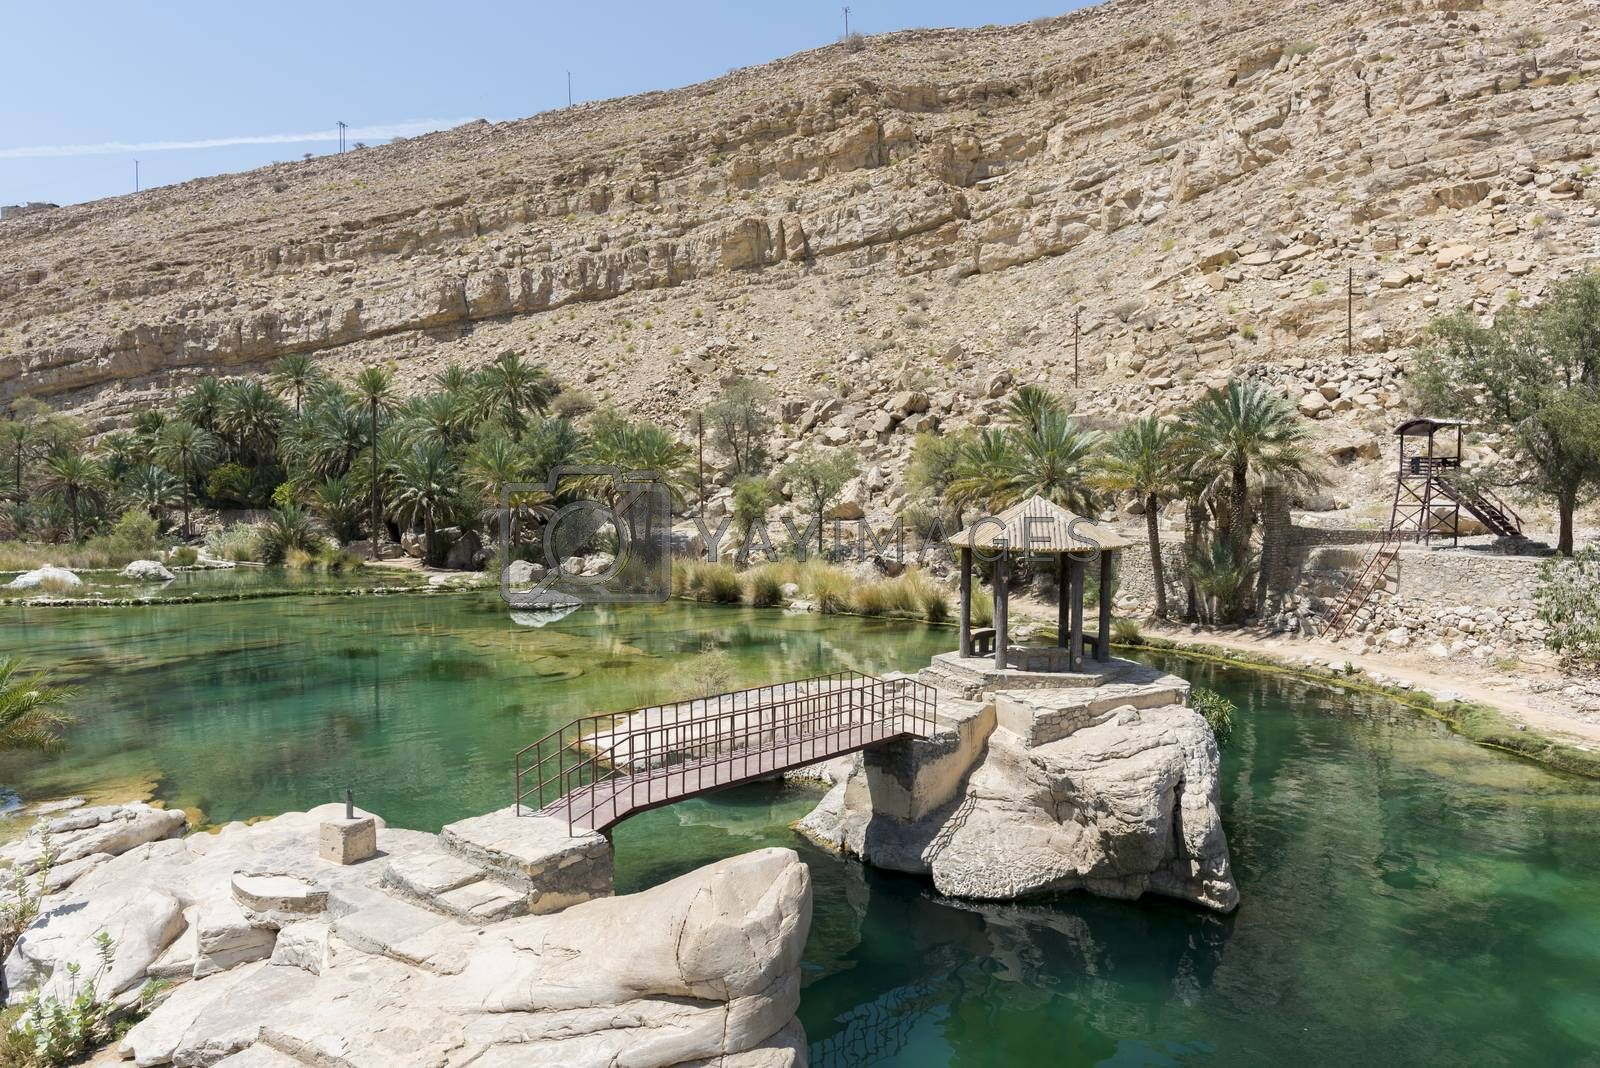 Rest area in one of the pool of Wadi Bani Khalid, Oman